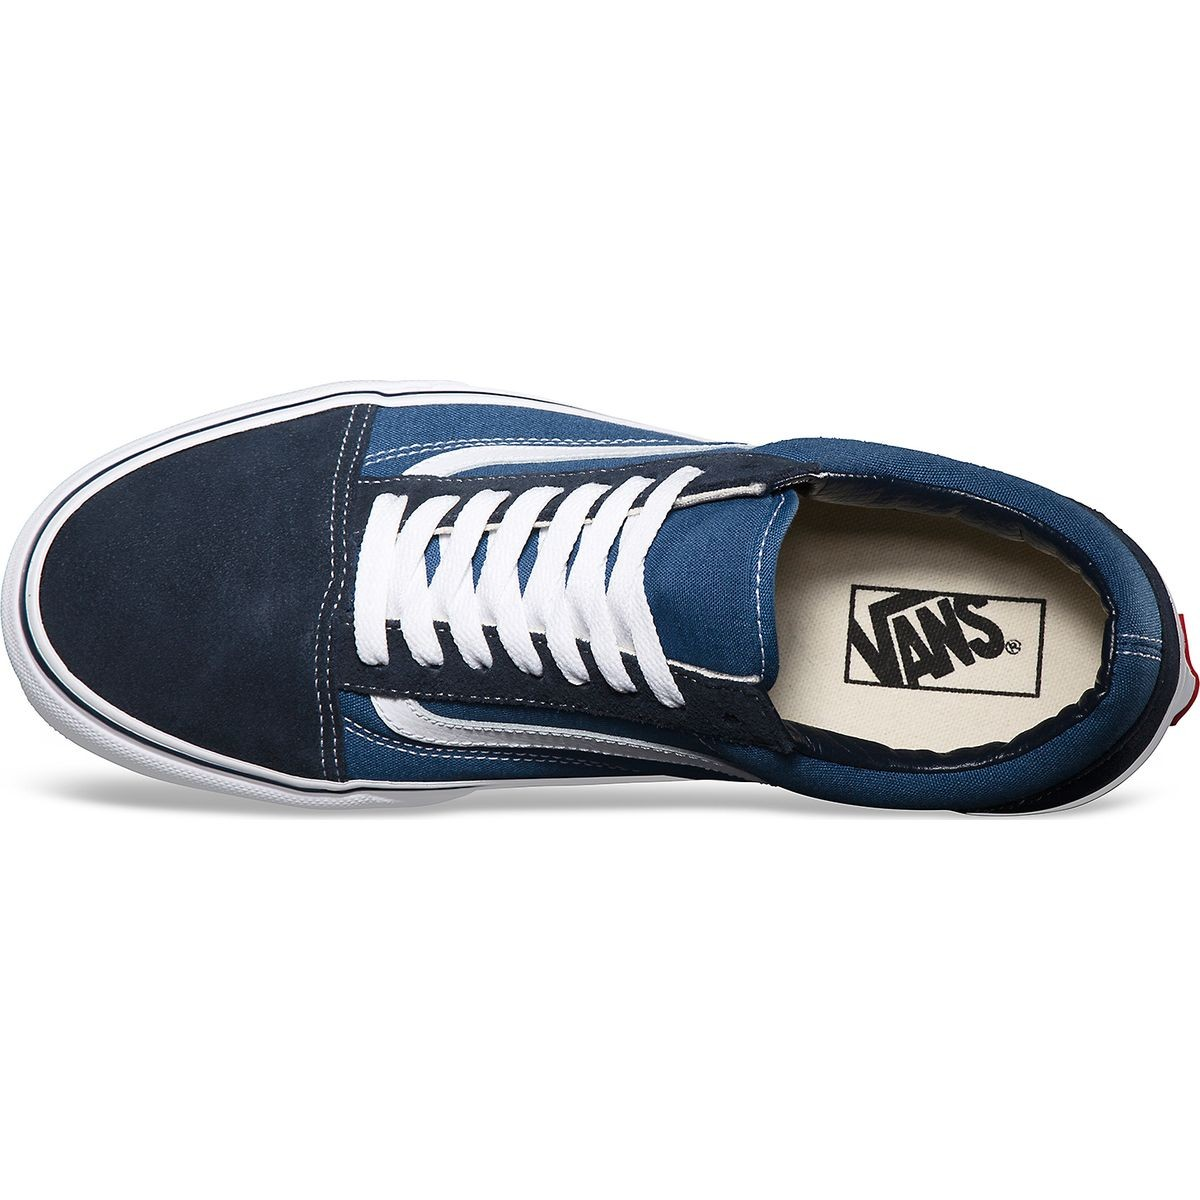 vans old skool navy blue price